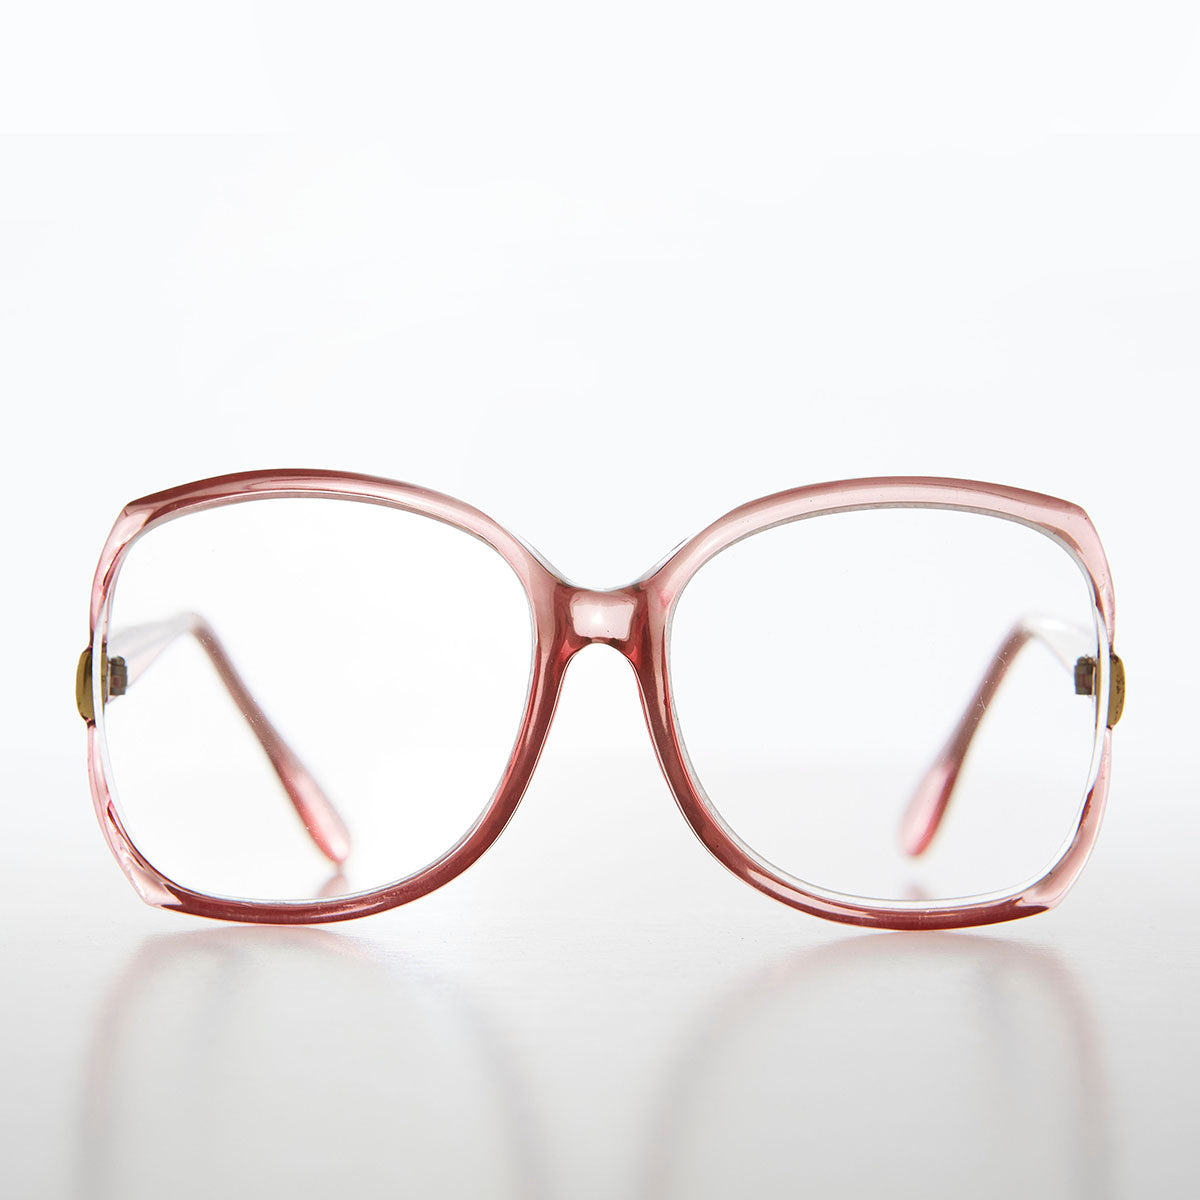 Oversized Women's Reading Glasses